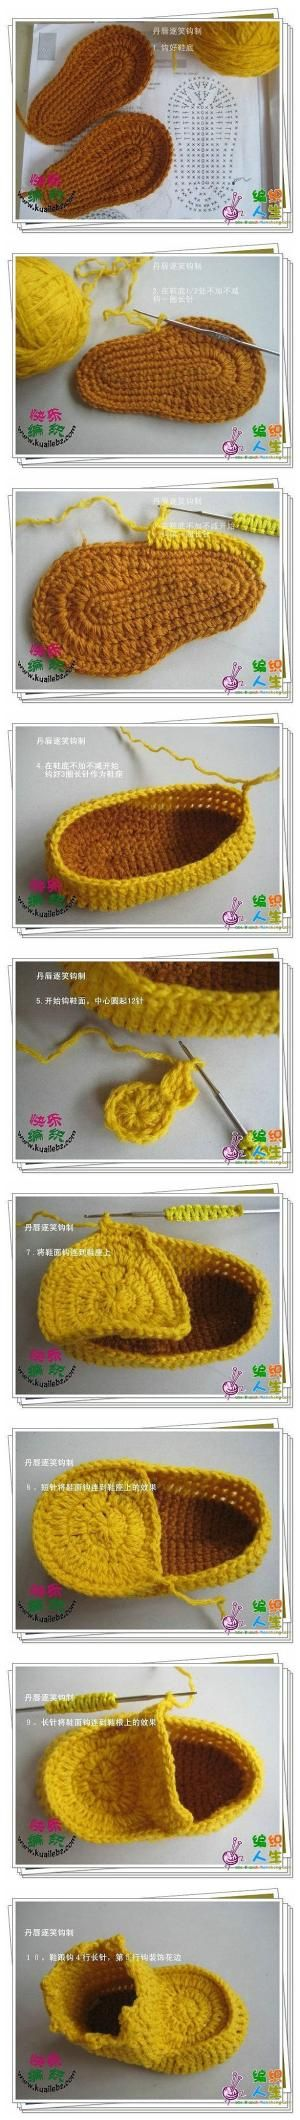 adorable crochet booties tutorial! by jantien